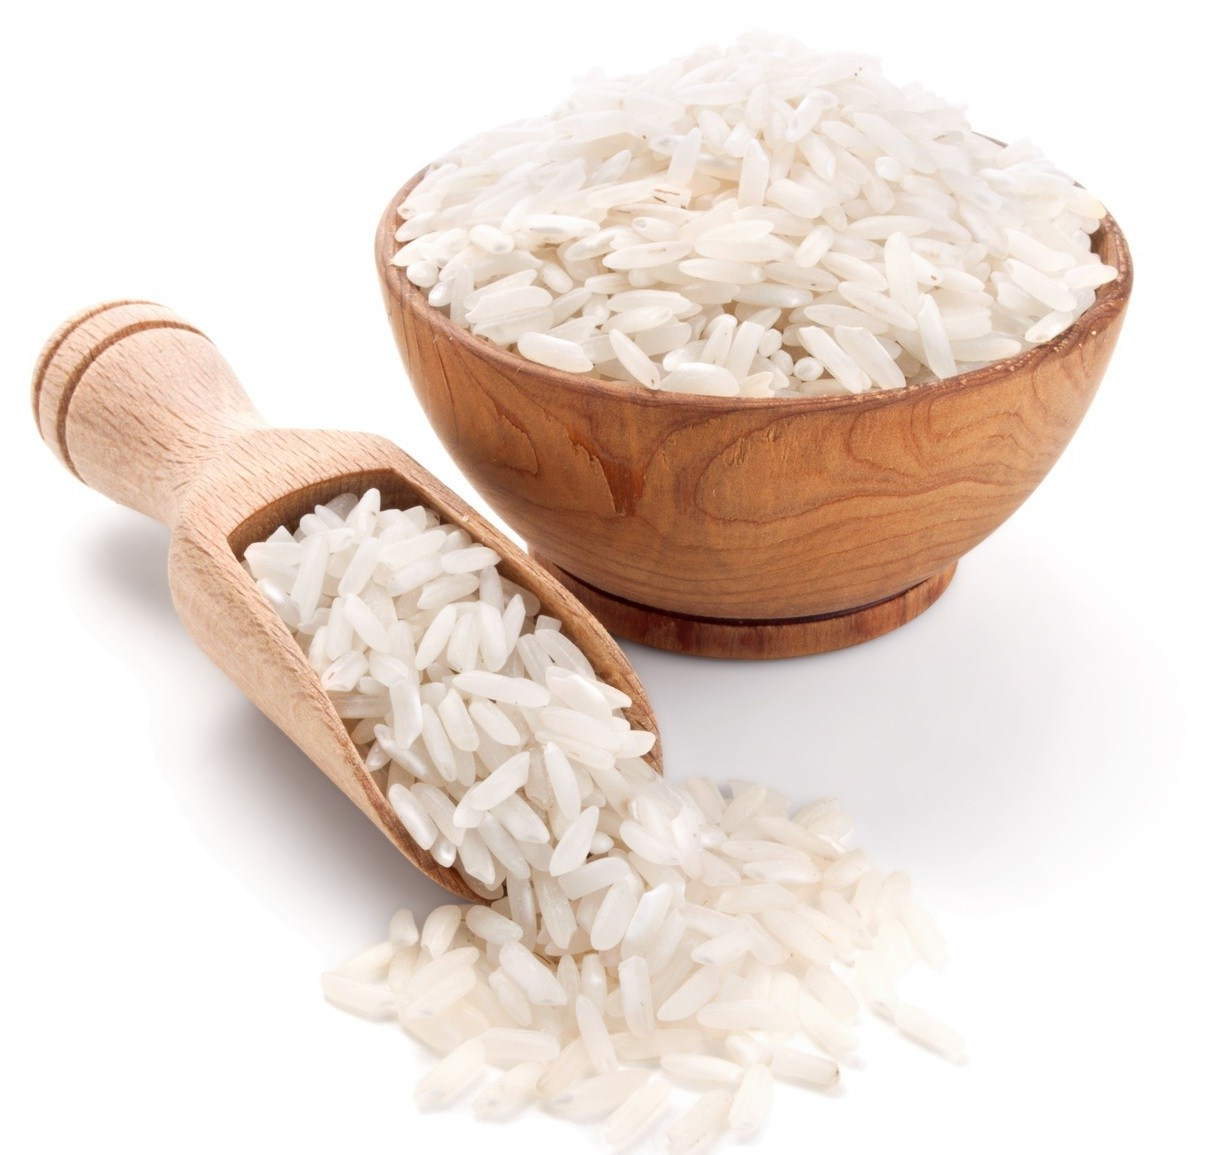 Instructions for using rice water for hair growth